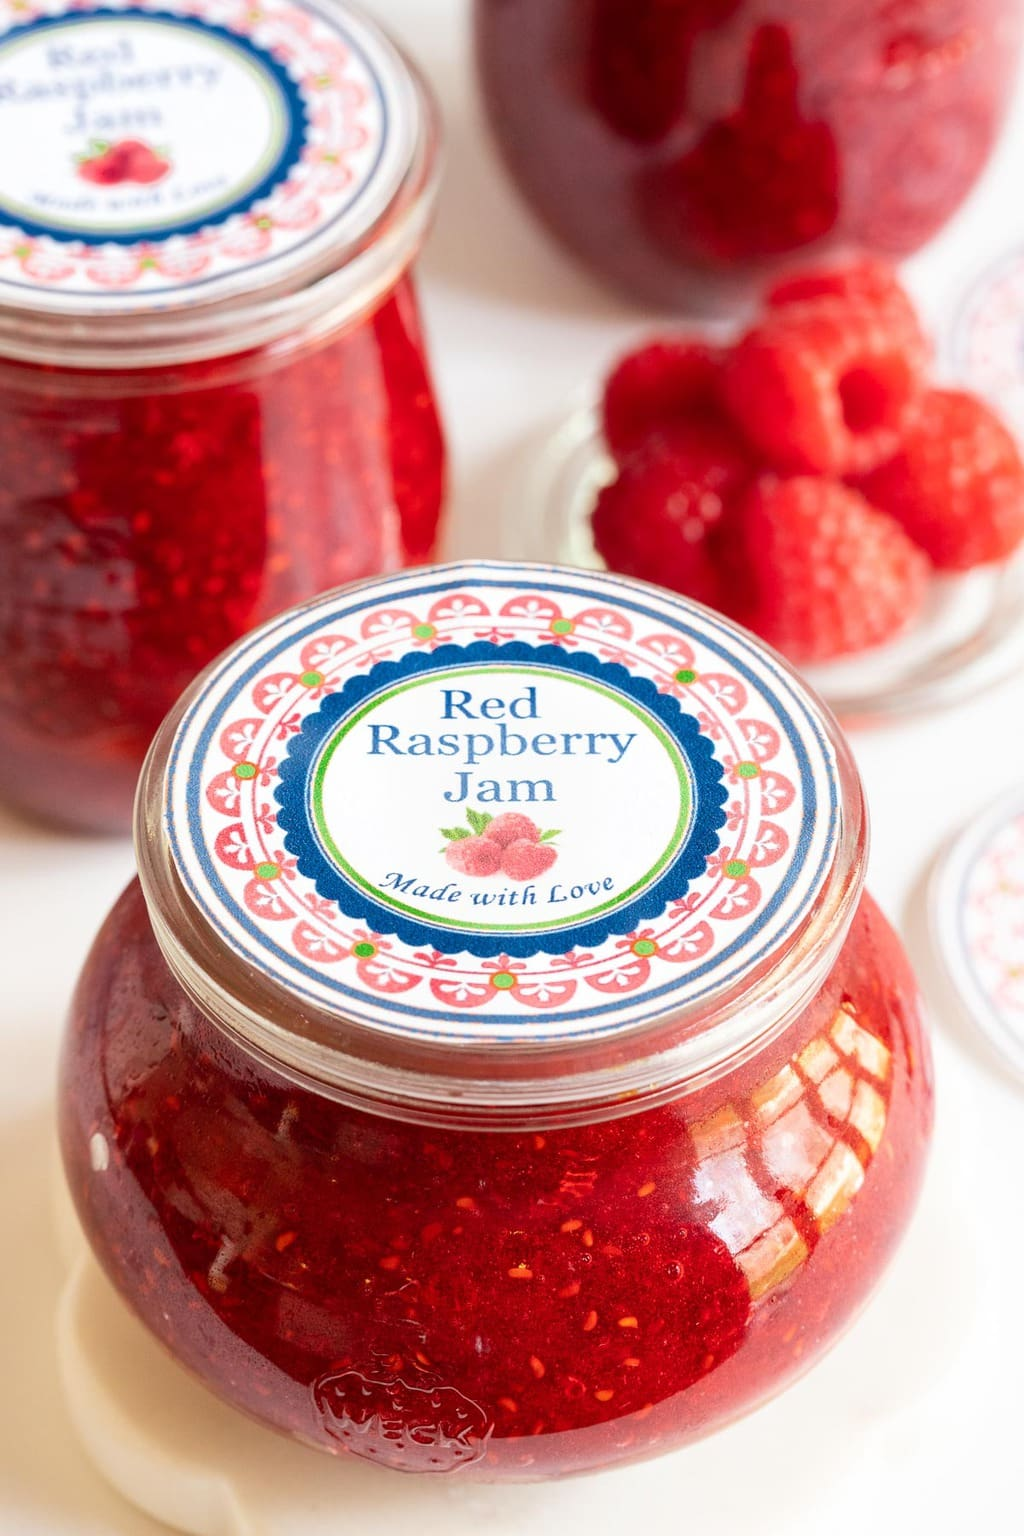 Vertical closeup photo of jars of Red Raspberry Freezer Jam with custom gift labels for the jar tops.